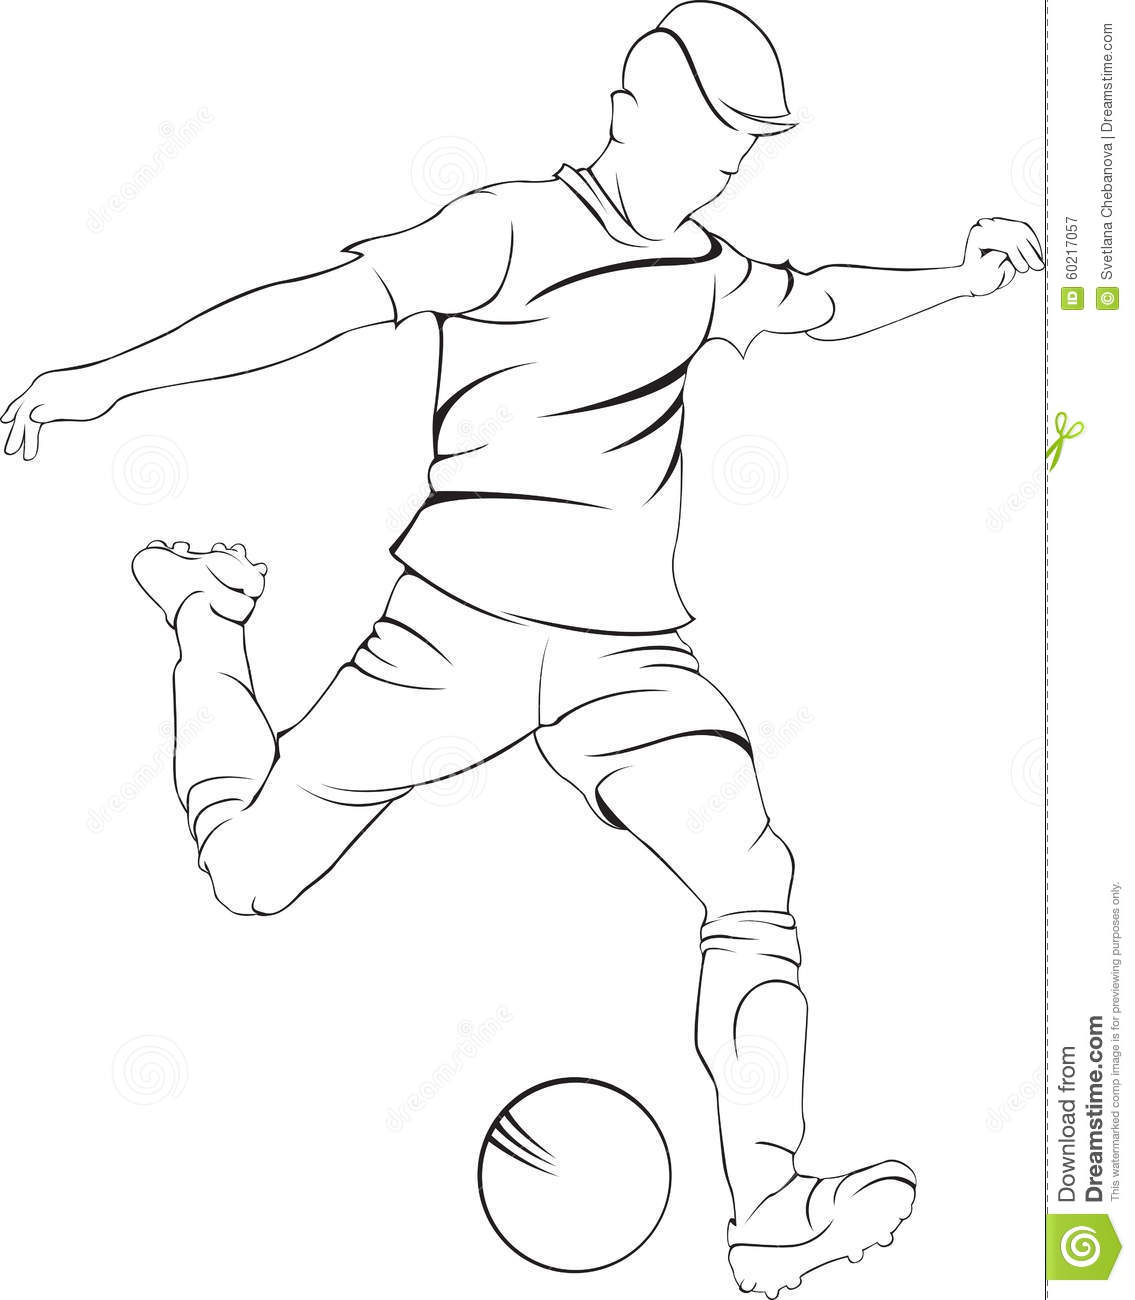 a drawing of a football player a drawing of a football player a a drawing of player football